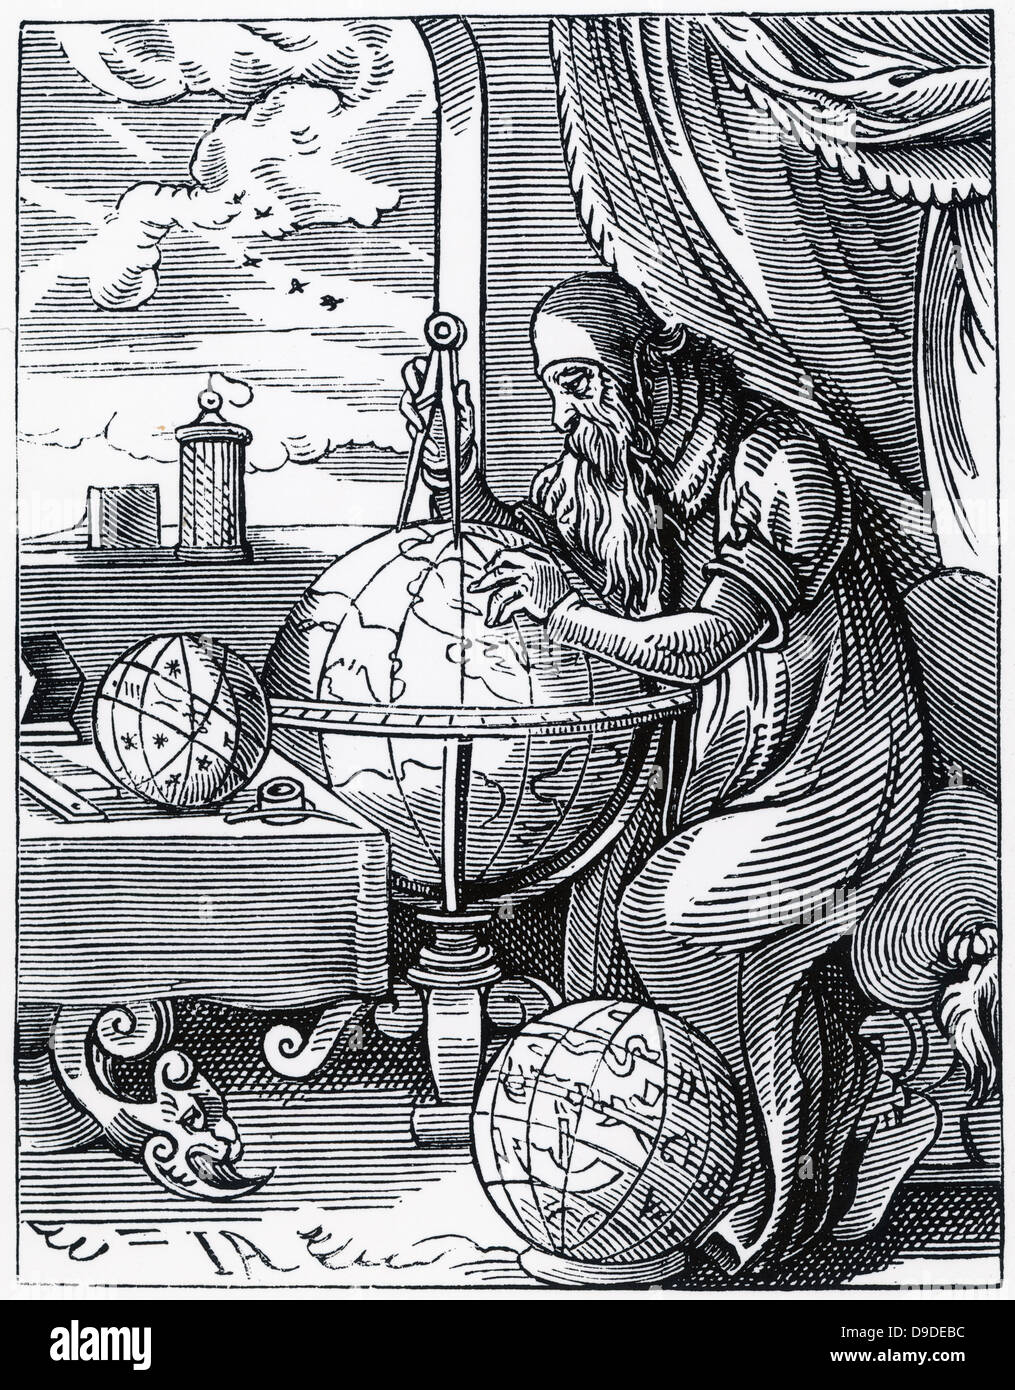 The Astronomer: sixteenth century woodcut. - Stock Image